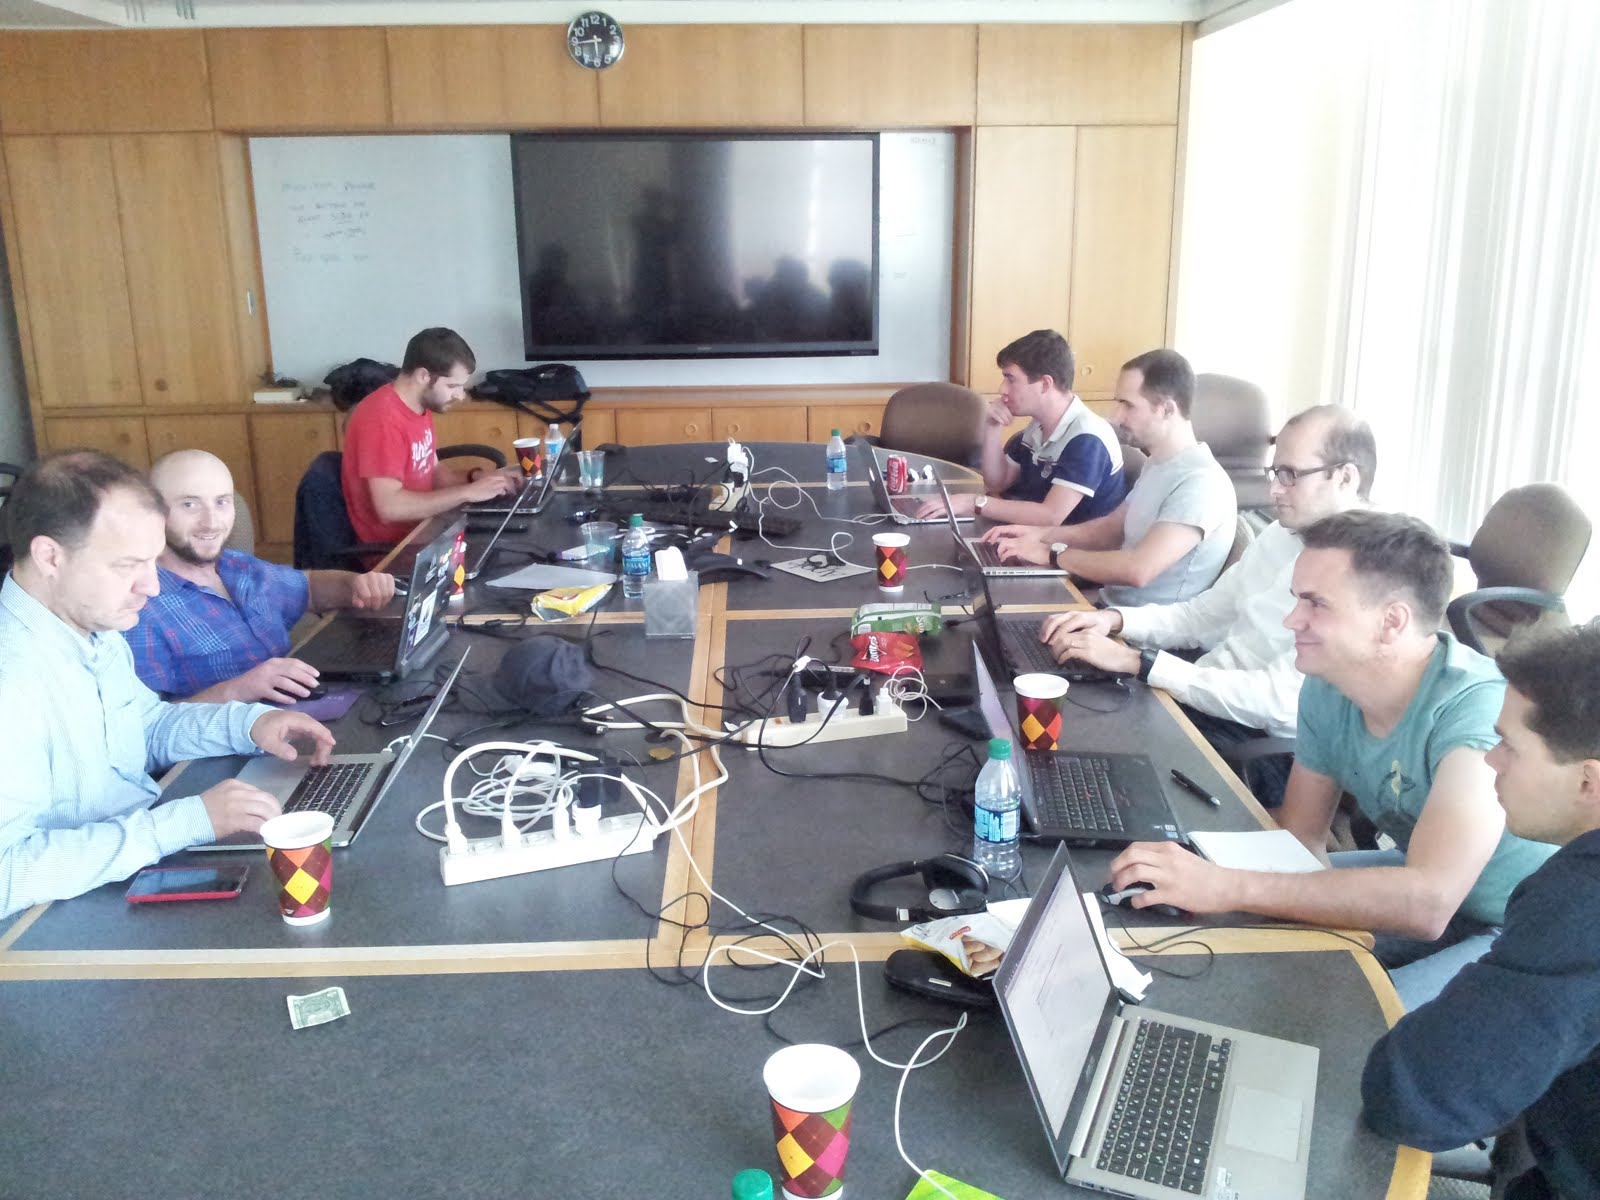 9th-CTK-Hackfest_GroupAtWork.jpg